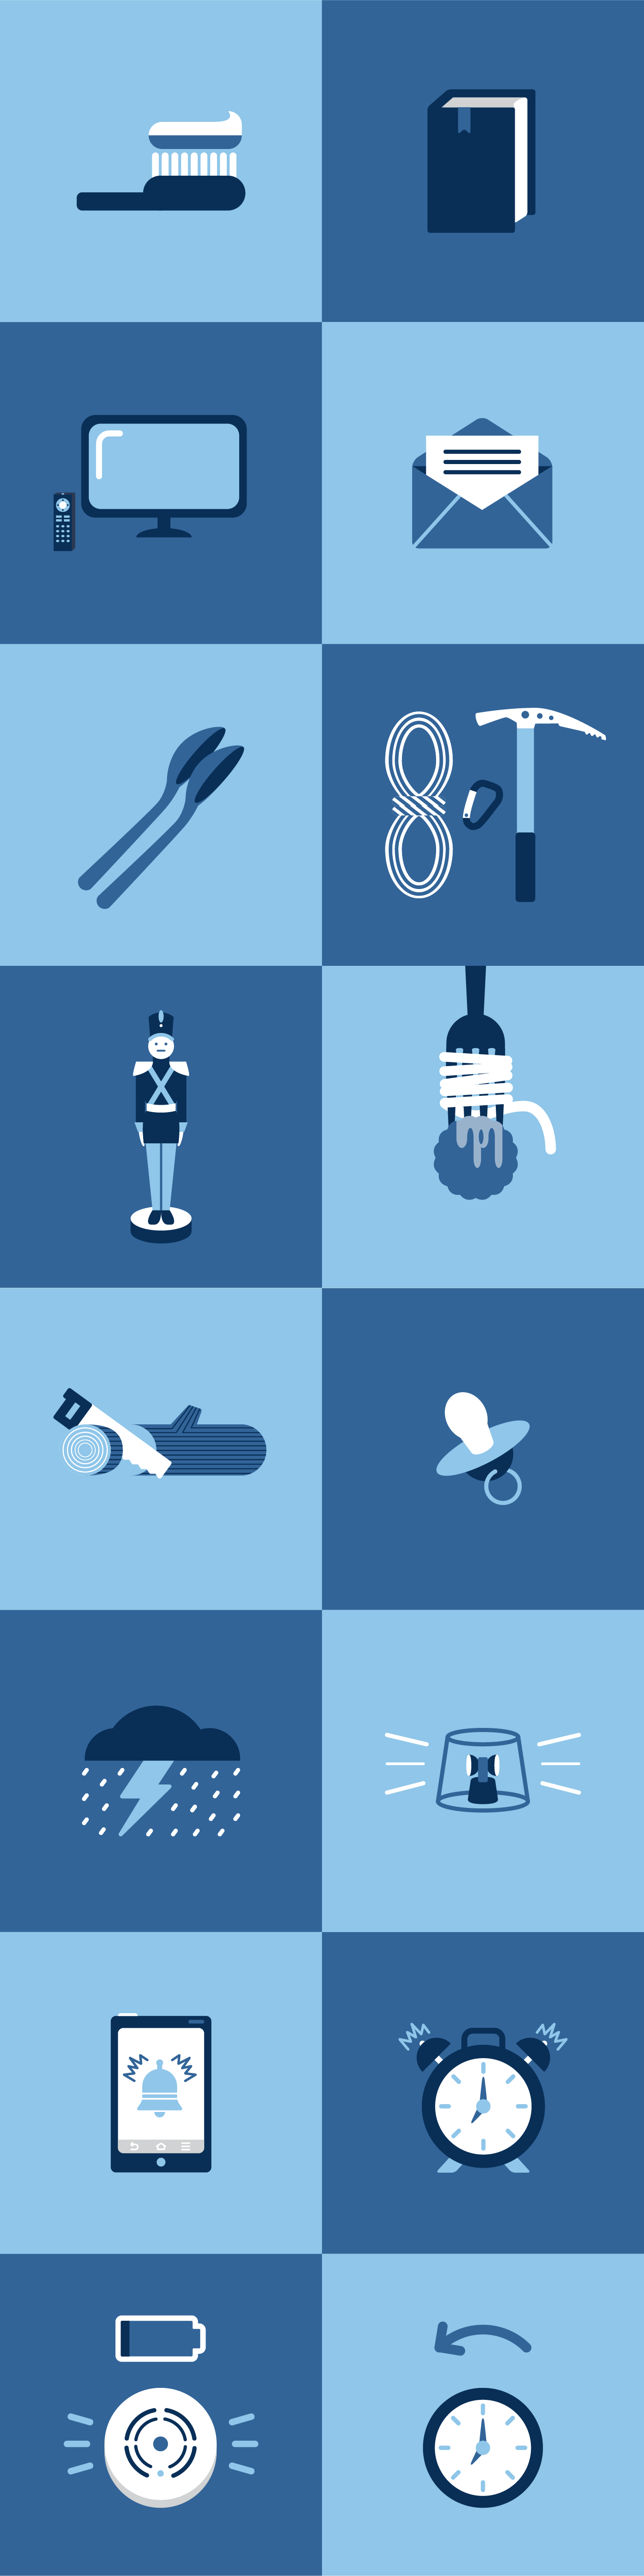 Sleep-Number-Illustrations-style-2A.png